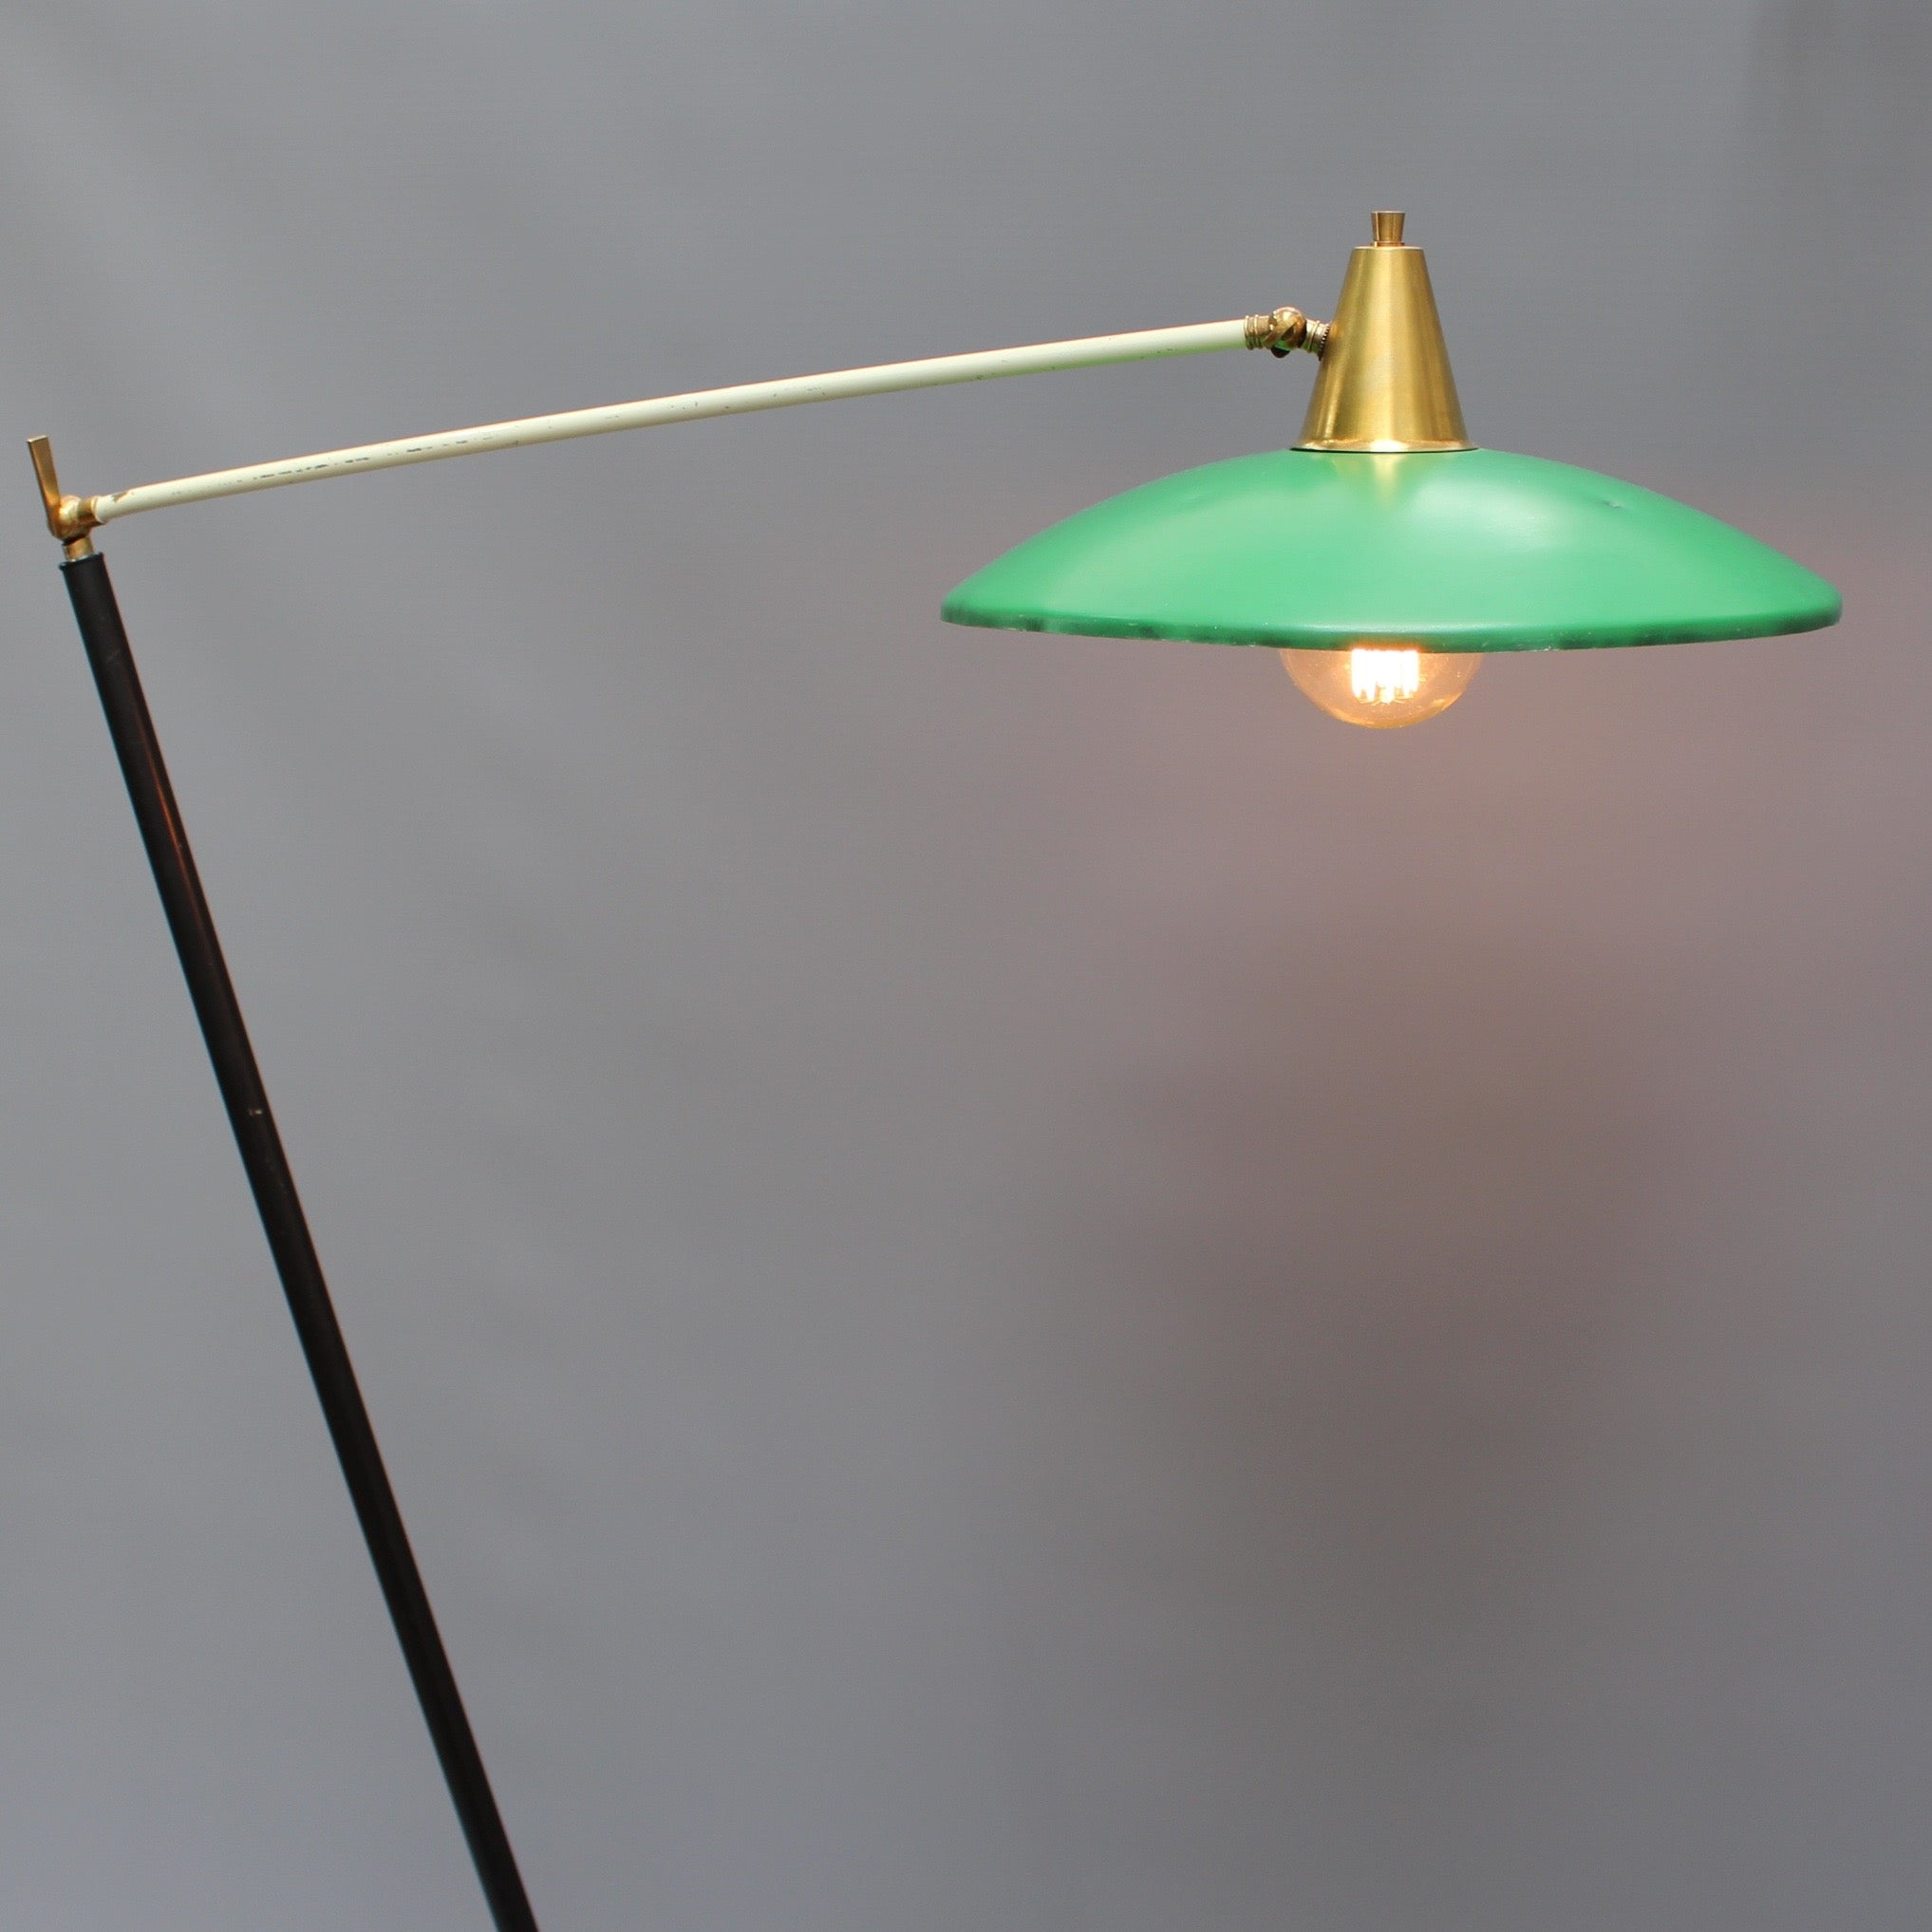 Stilux Italian Articulating Floor Lamp with Green Shade (circa 1950s)